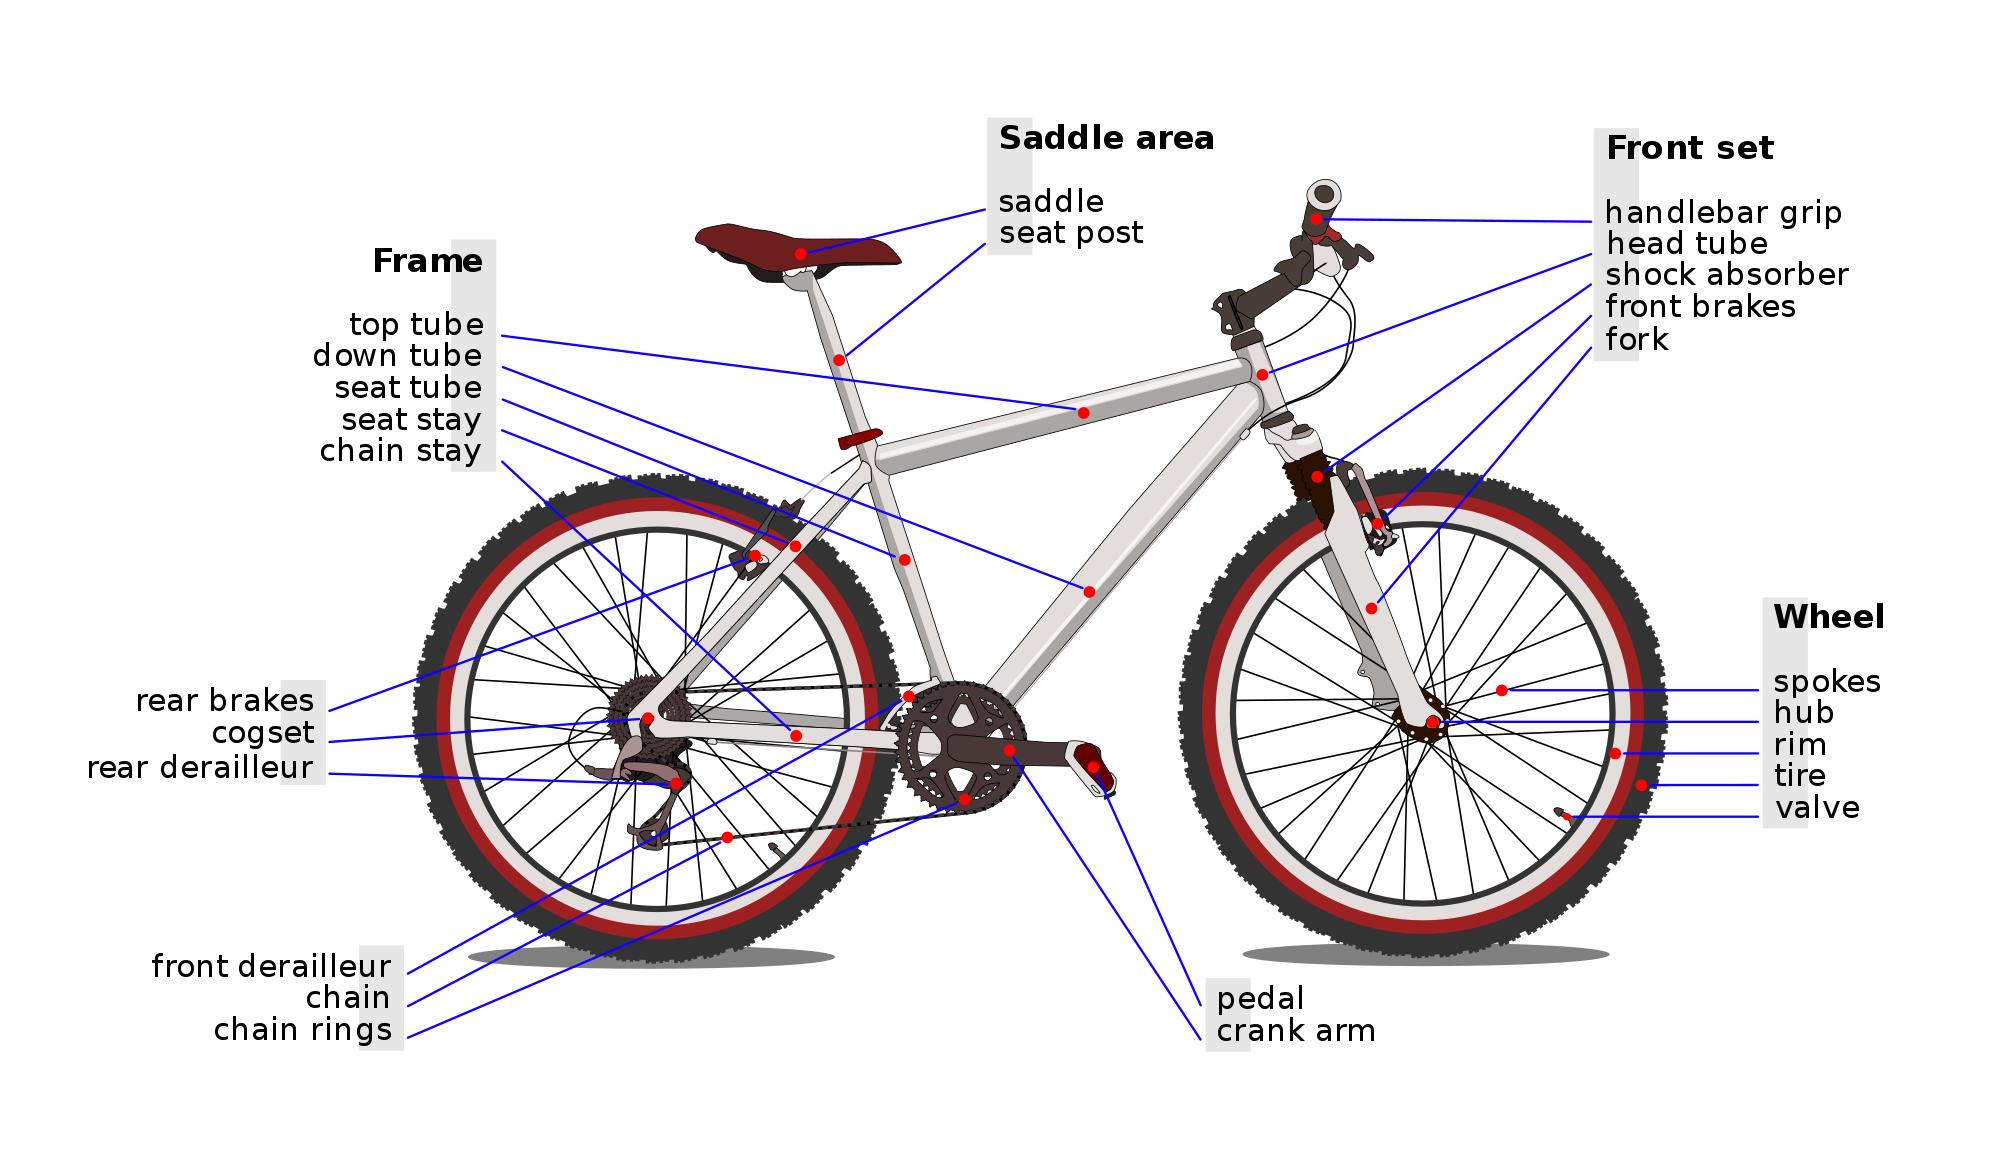 List of bicycle parts - Wikipedia